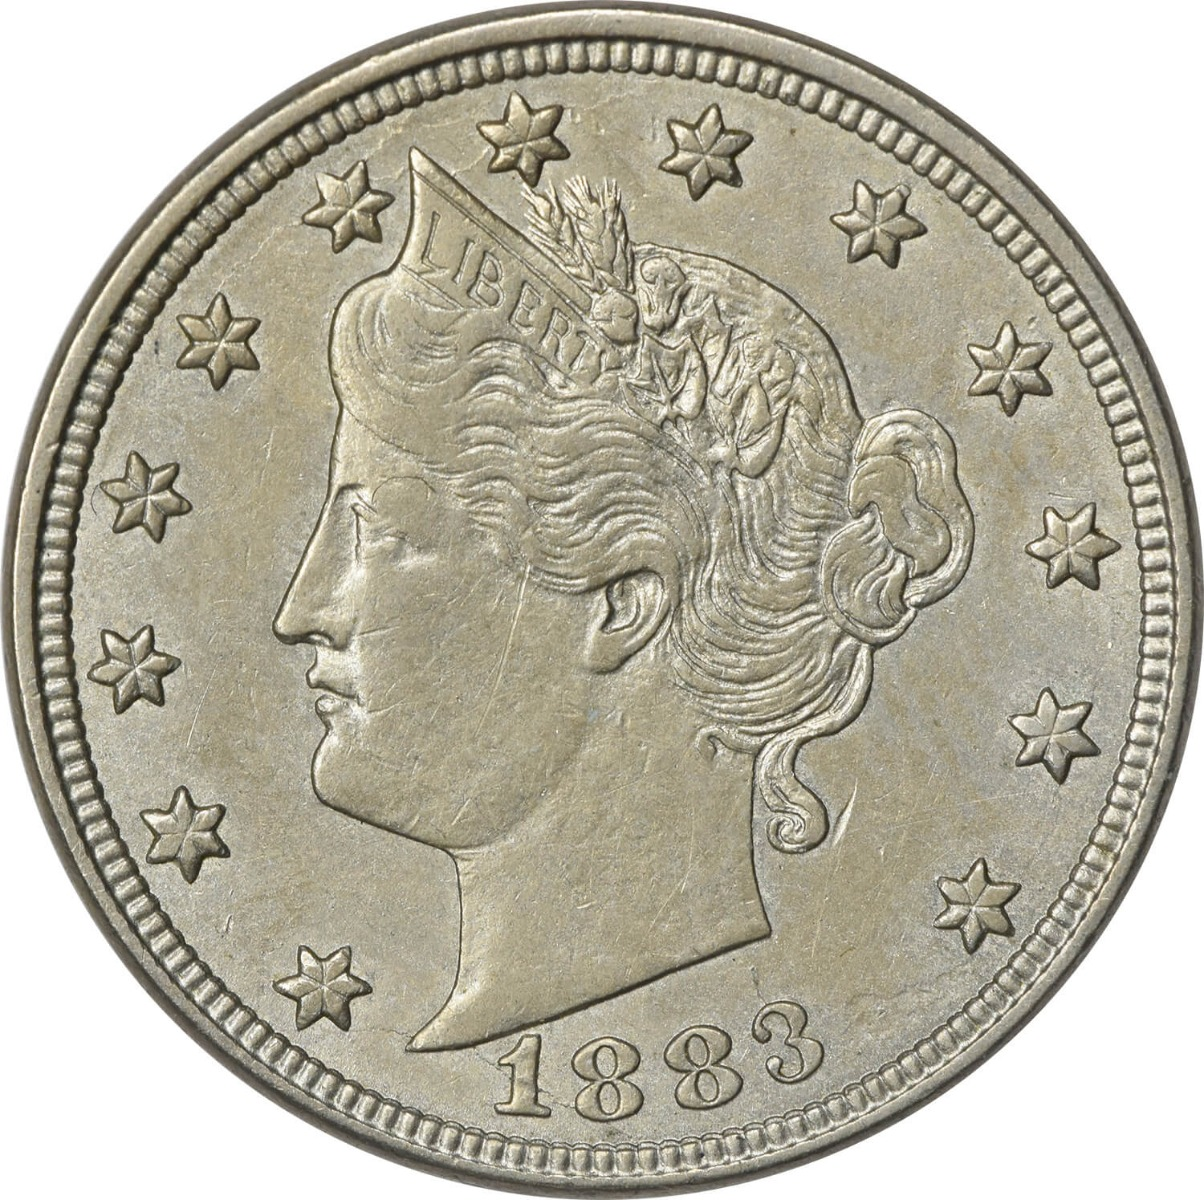 1883 Liberty Nickel With Cents AU Uncertified